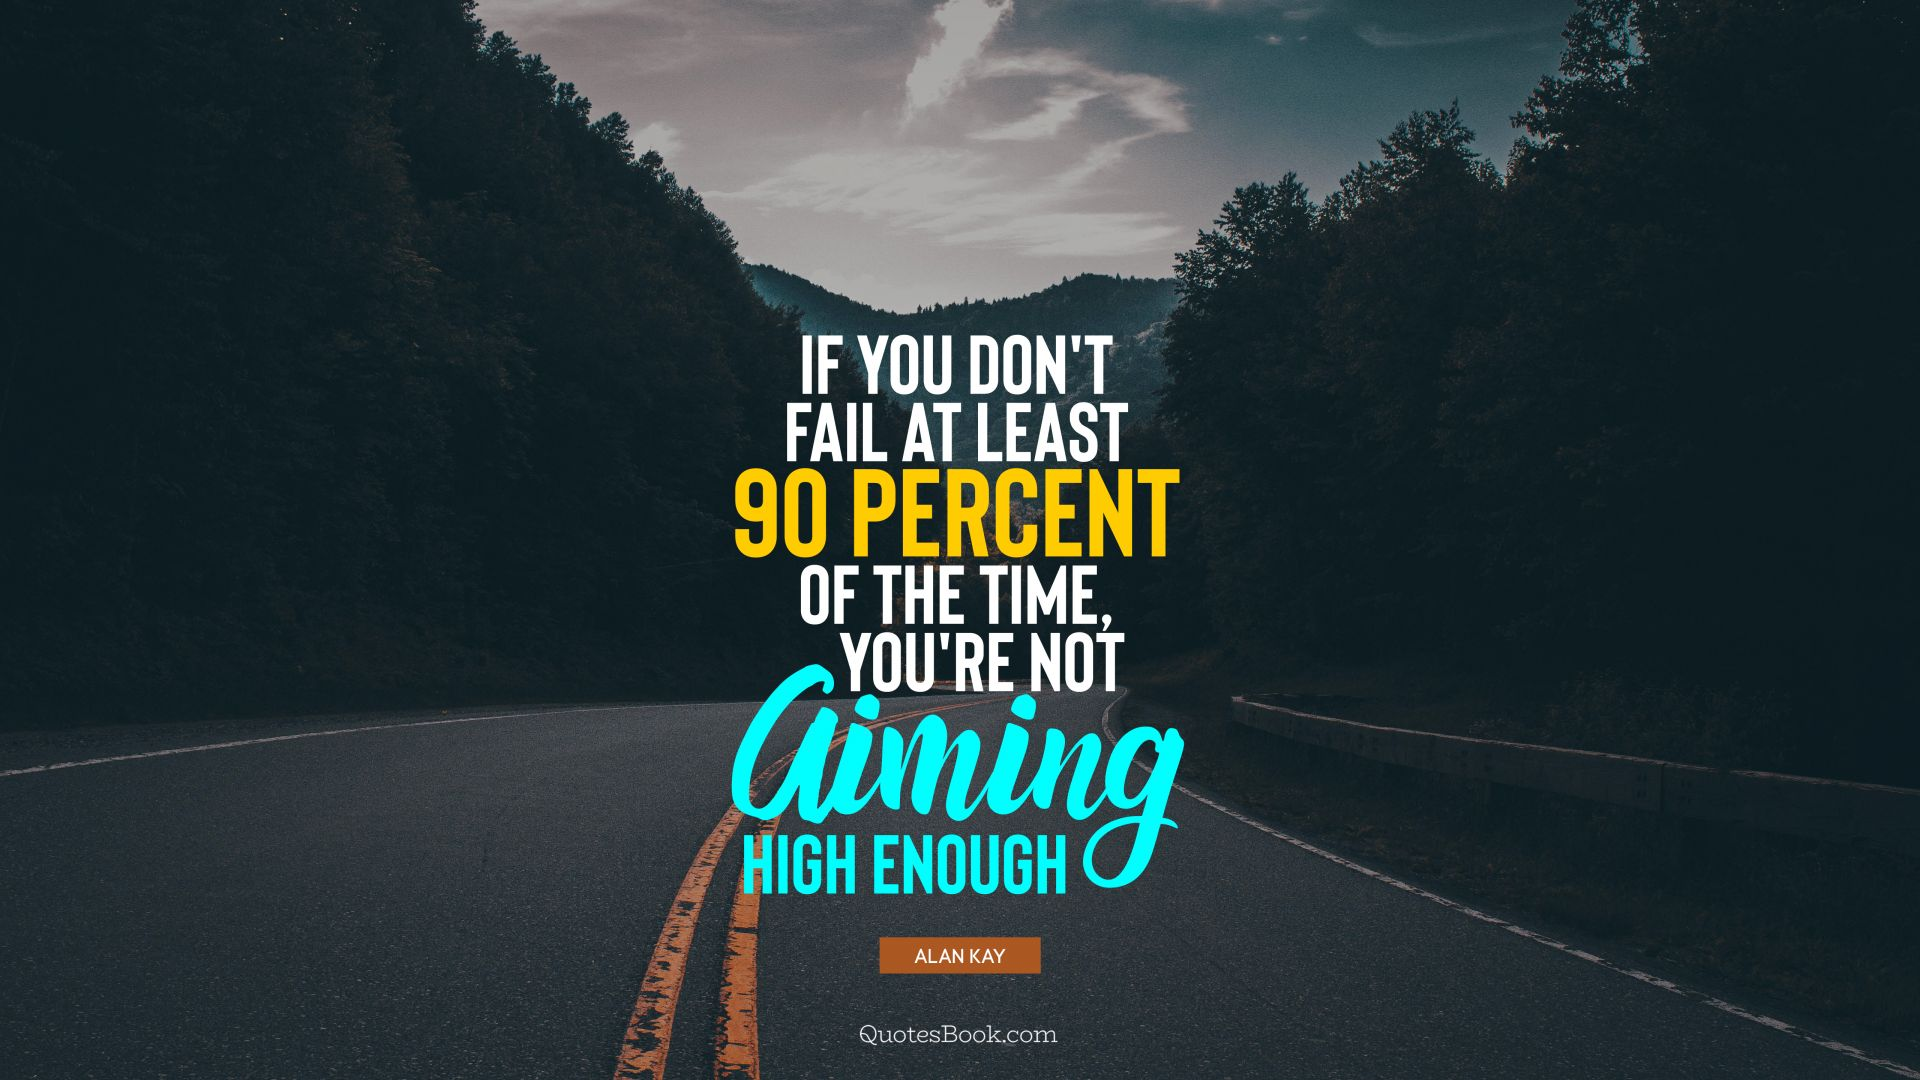 If you don't fail at least 90 percent of the time, you're not aiming high enough. - Quote by Alan Kay